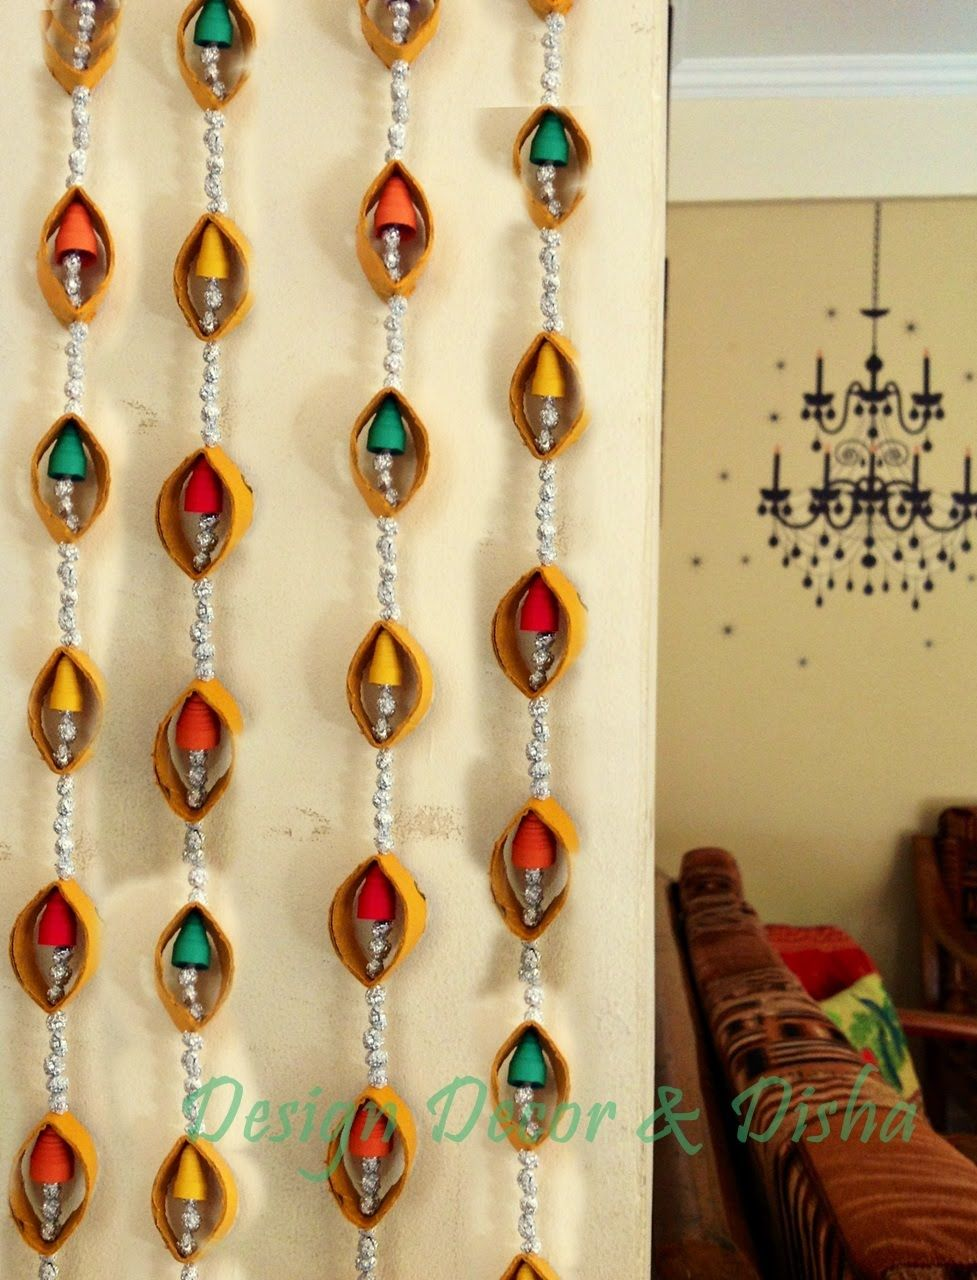 Kitchen towel hanging ideas - Kitchen Towel Hanging Ideas Diwali Craft Idea Wall Hanging Download